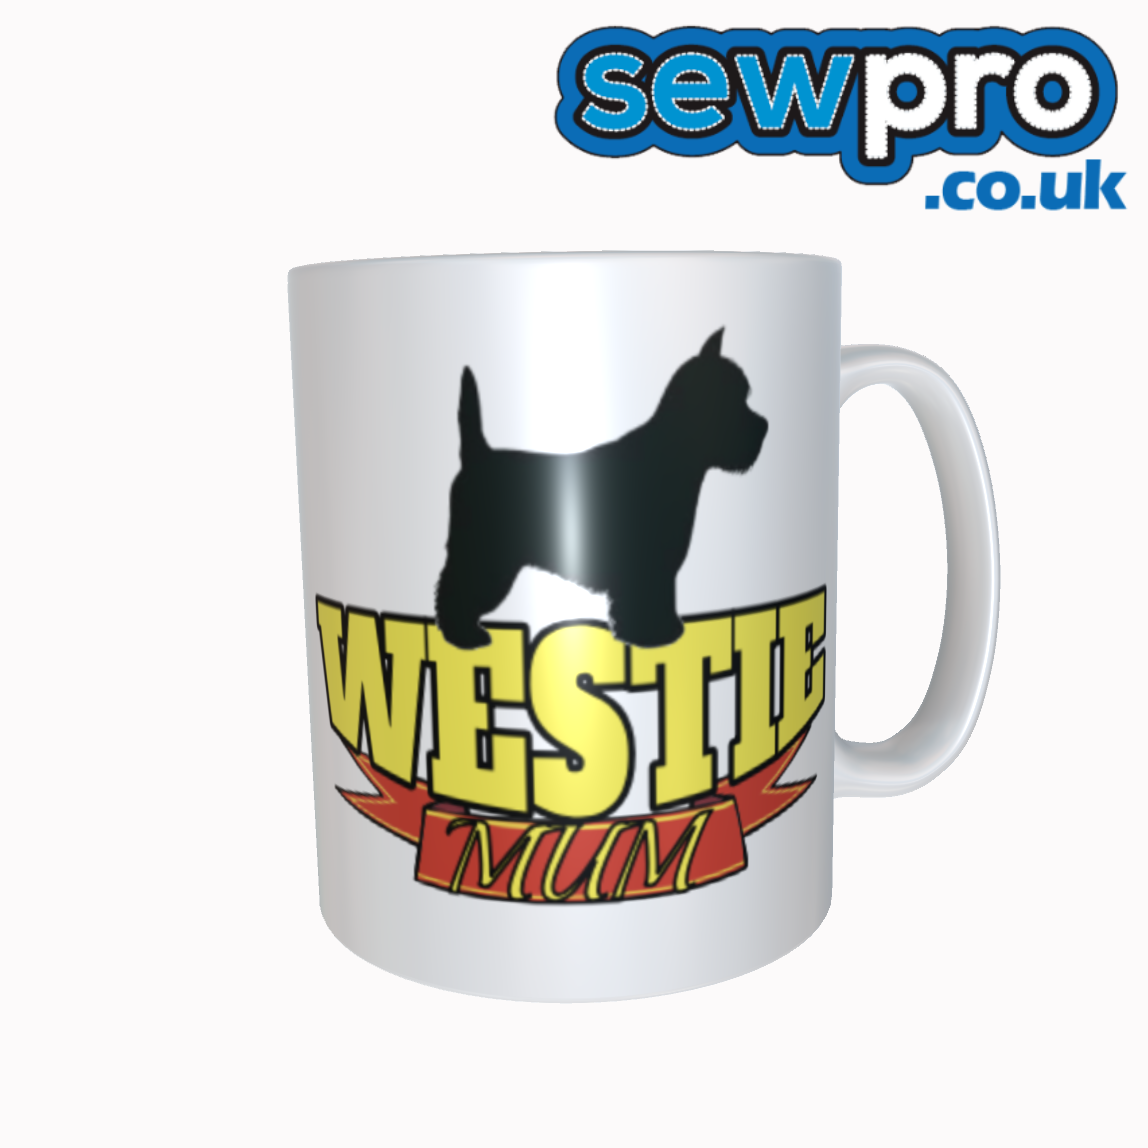 Westie Mum Tea / Coffee Mug